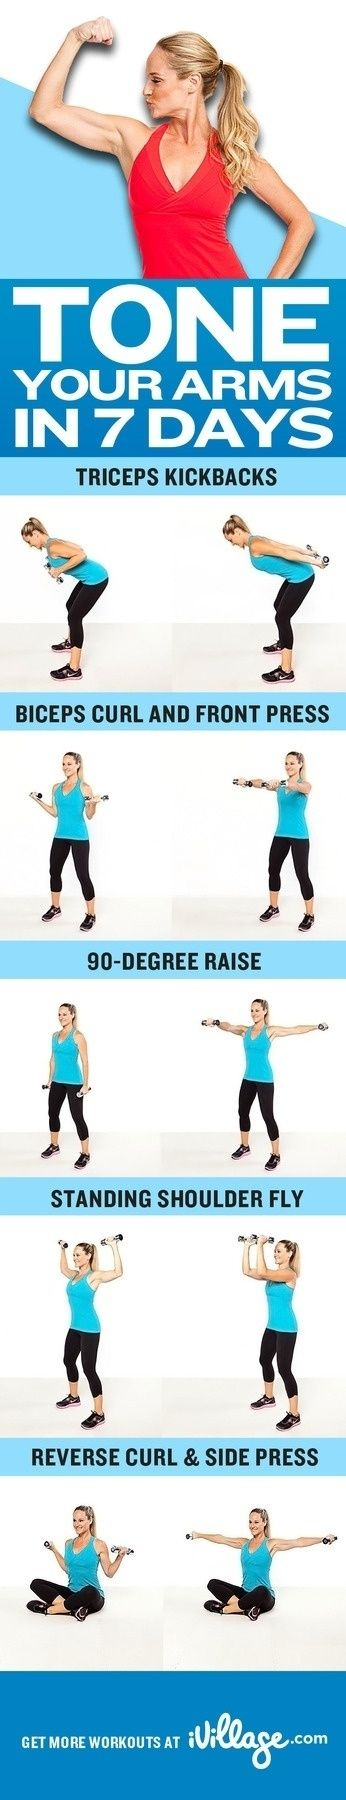 Great Arm Toning Sequence-do 15 reps each. Not sure about 7 days...but will give it a try